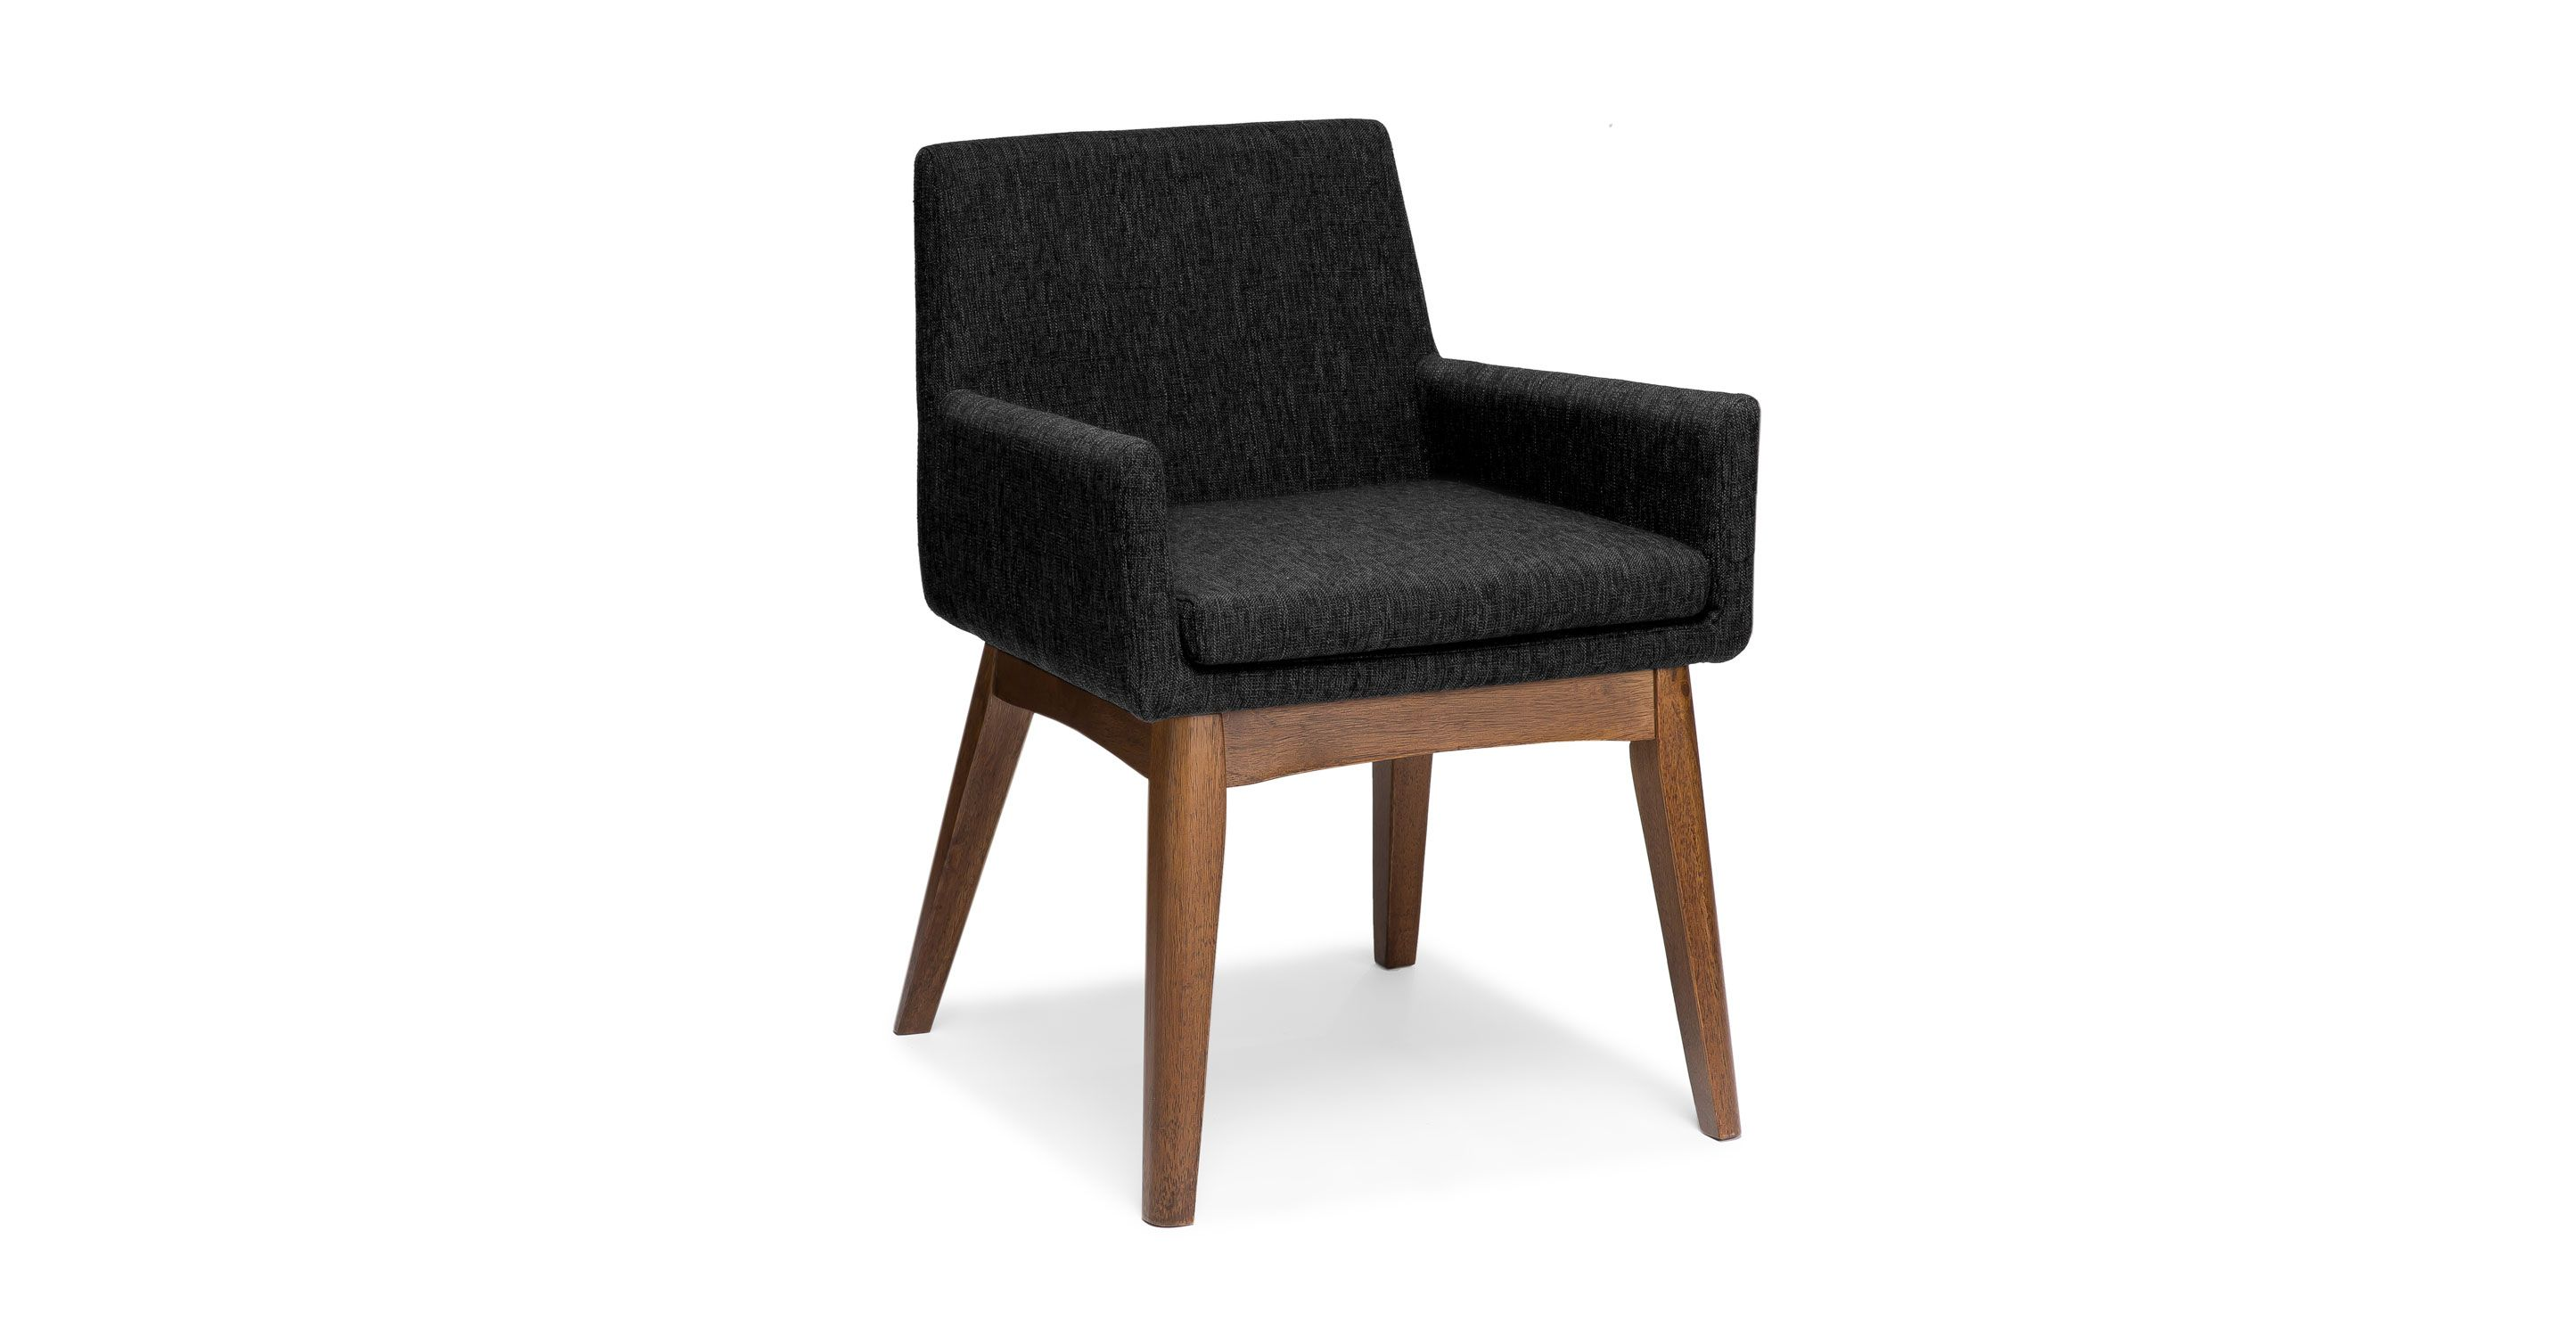 Chanel Licorice Dining Armchair Armchairs Chairs and Furniture